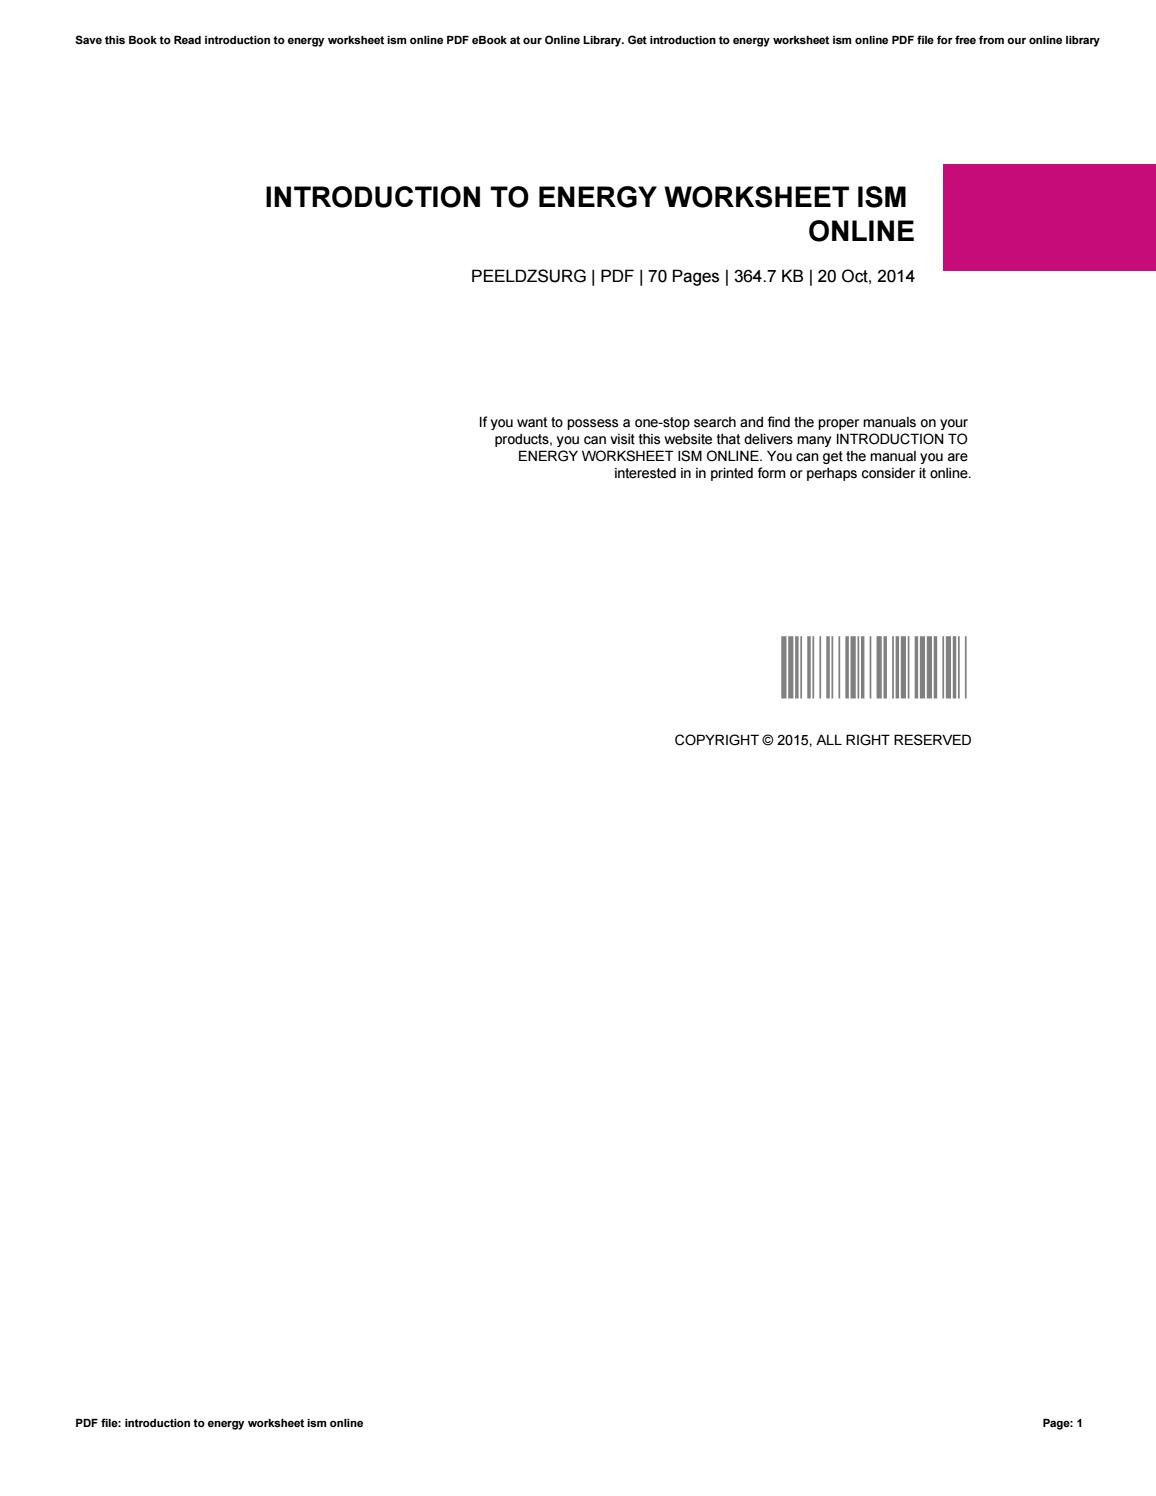 Introduction to Energy Worksheet Introduction to Energy Worksheet ism Online by Tm2mail742